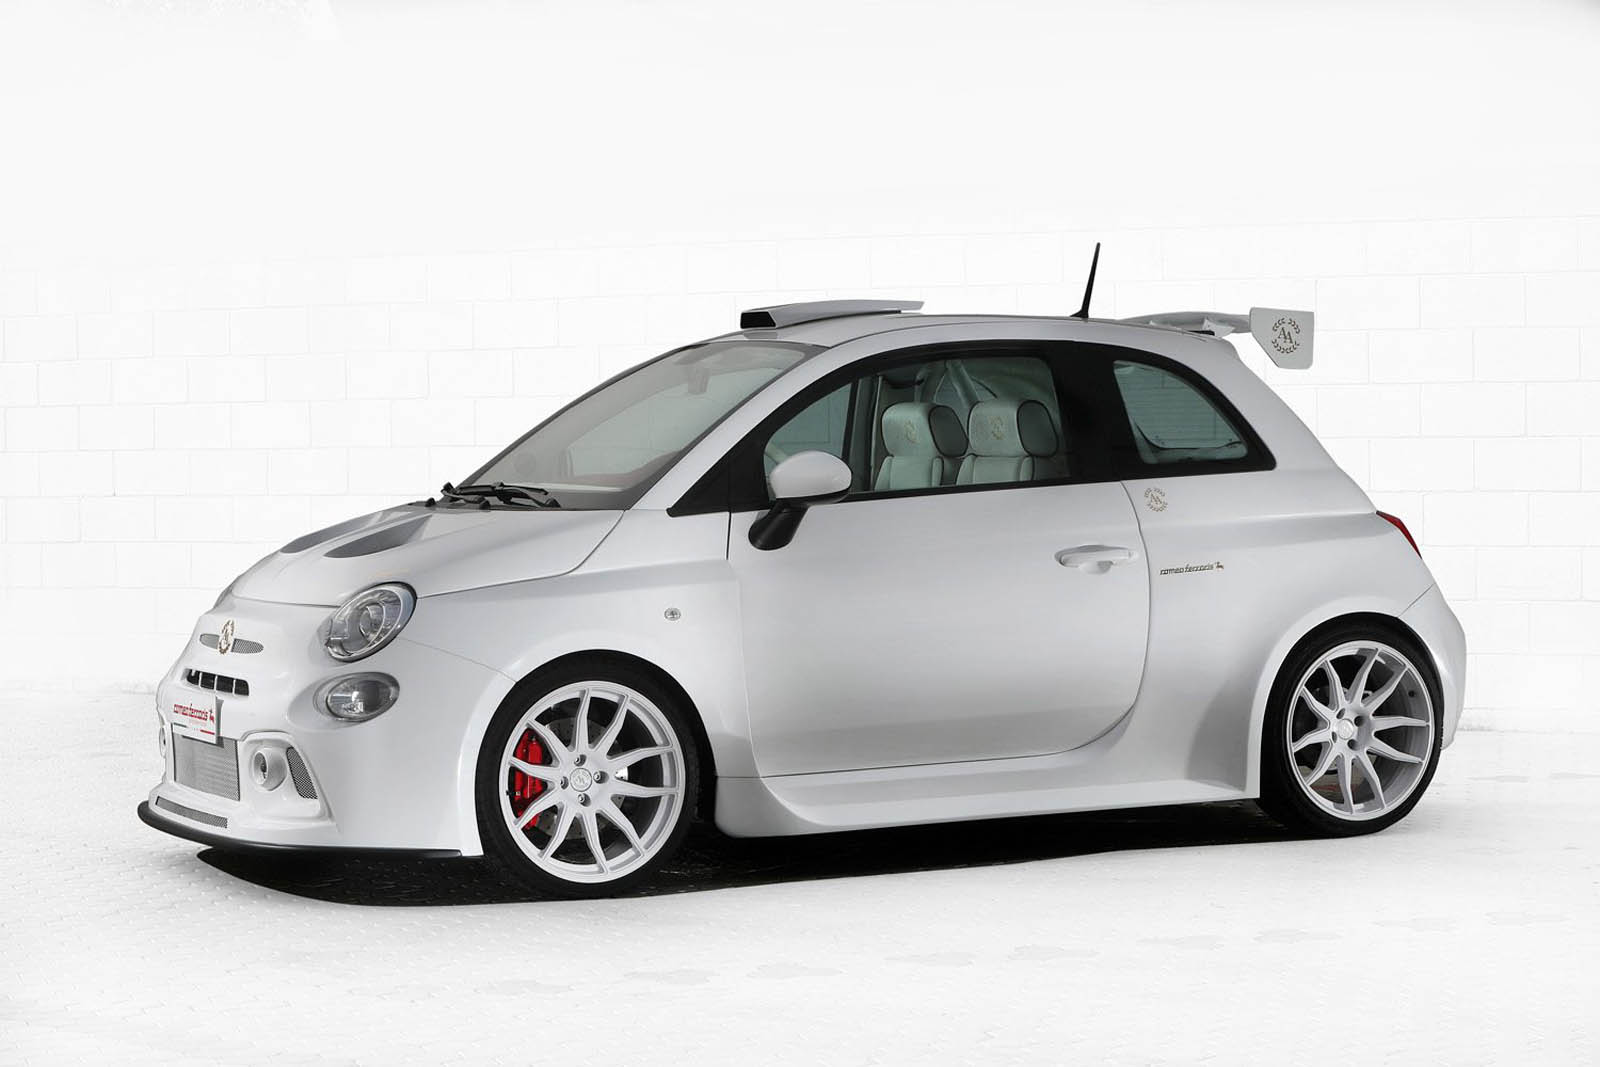 cinquone qatar by romeo ferraris is a 248hp fiat 500 for the persian gulf carscoops. Black Bedroom Furniture Sets. Home Design Ideas